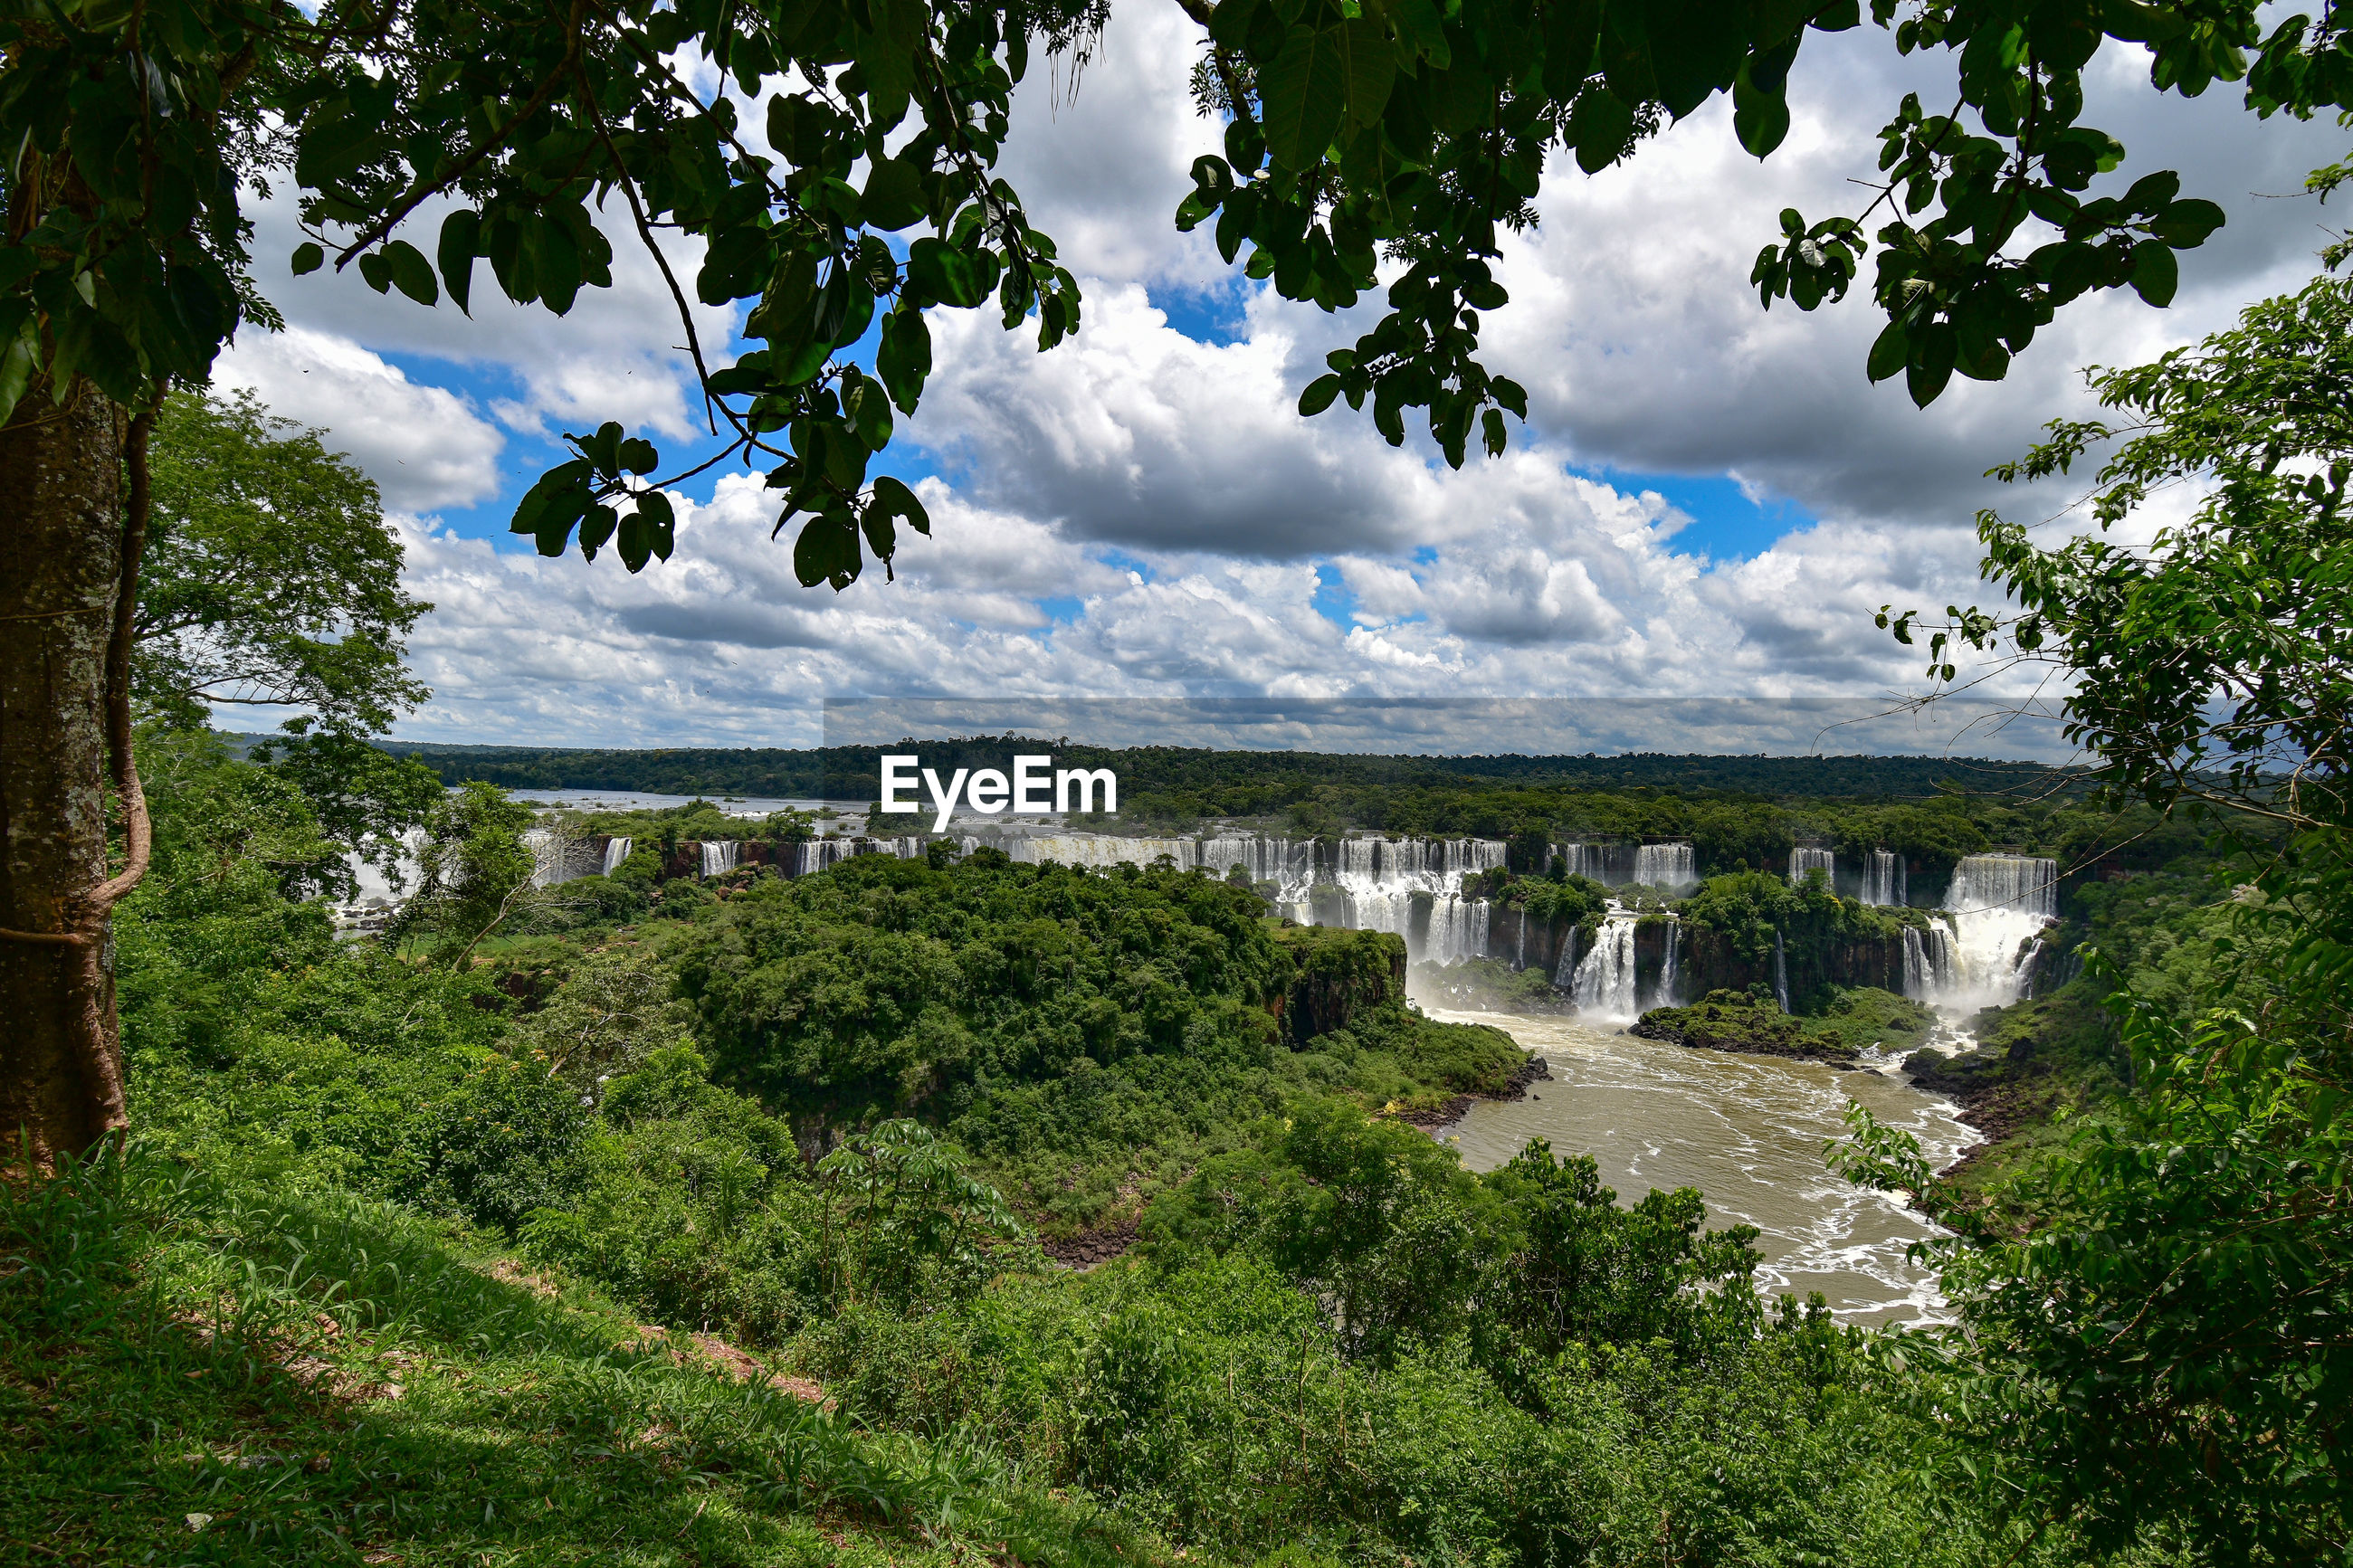 Scenic view of landscape against sky - iguazu waterfalls seen through a natural frame